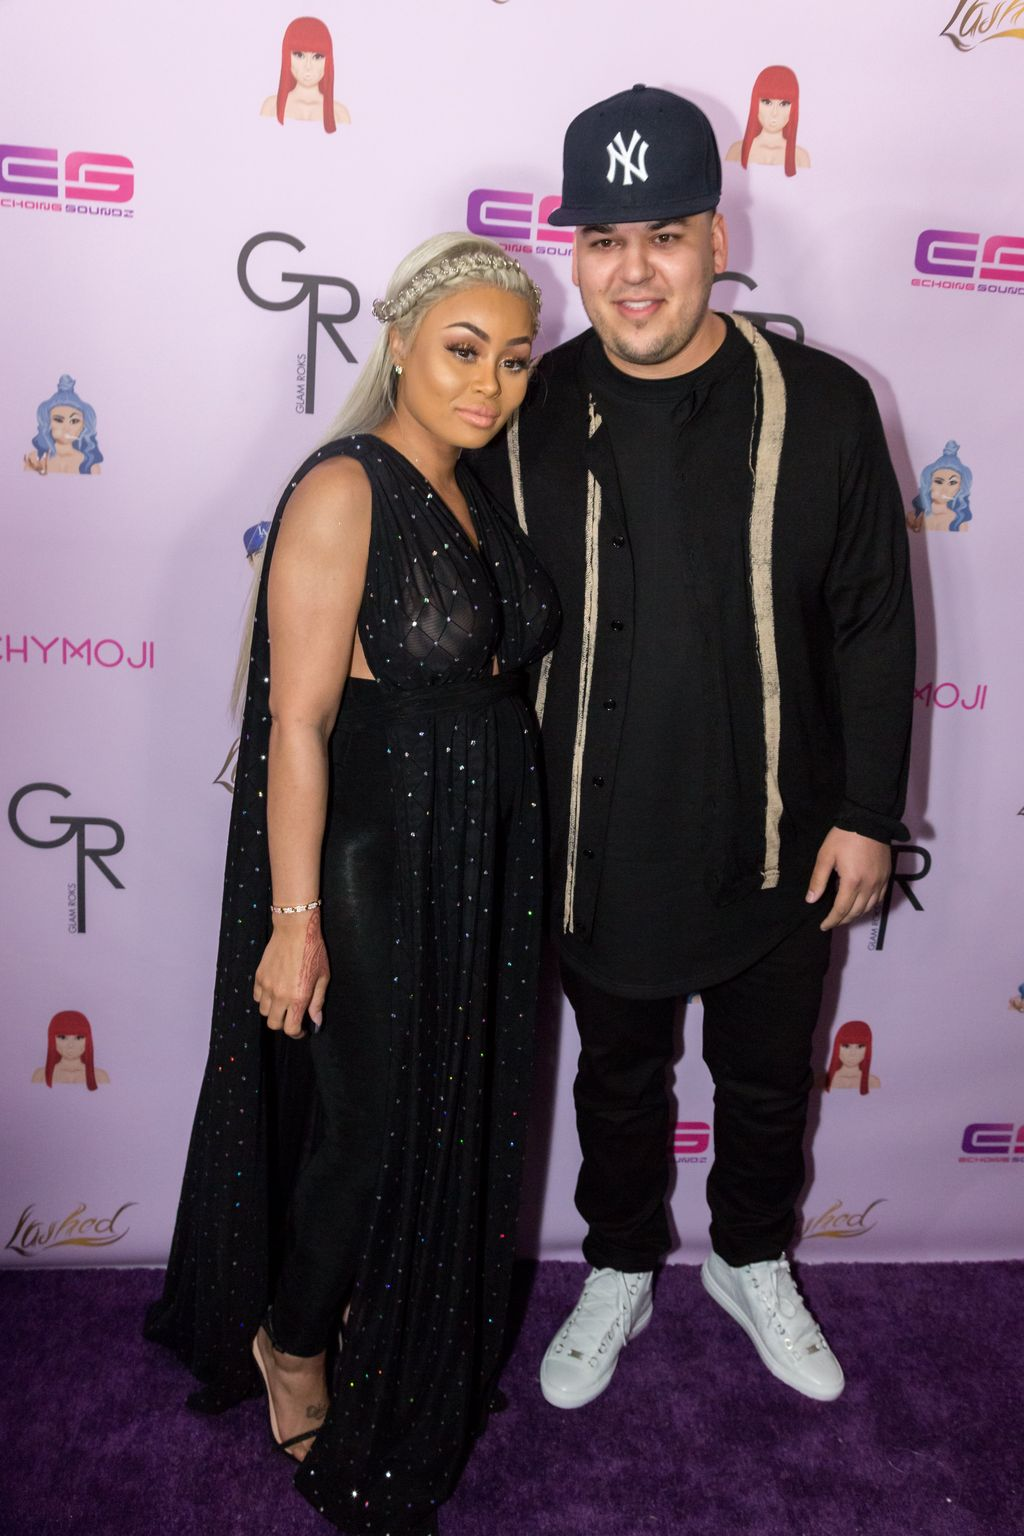 Rob Kardashian and Blac Chyna at the latter